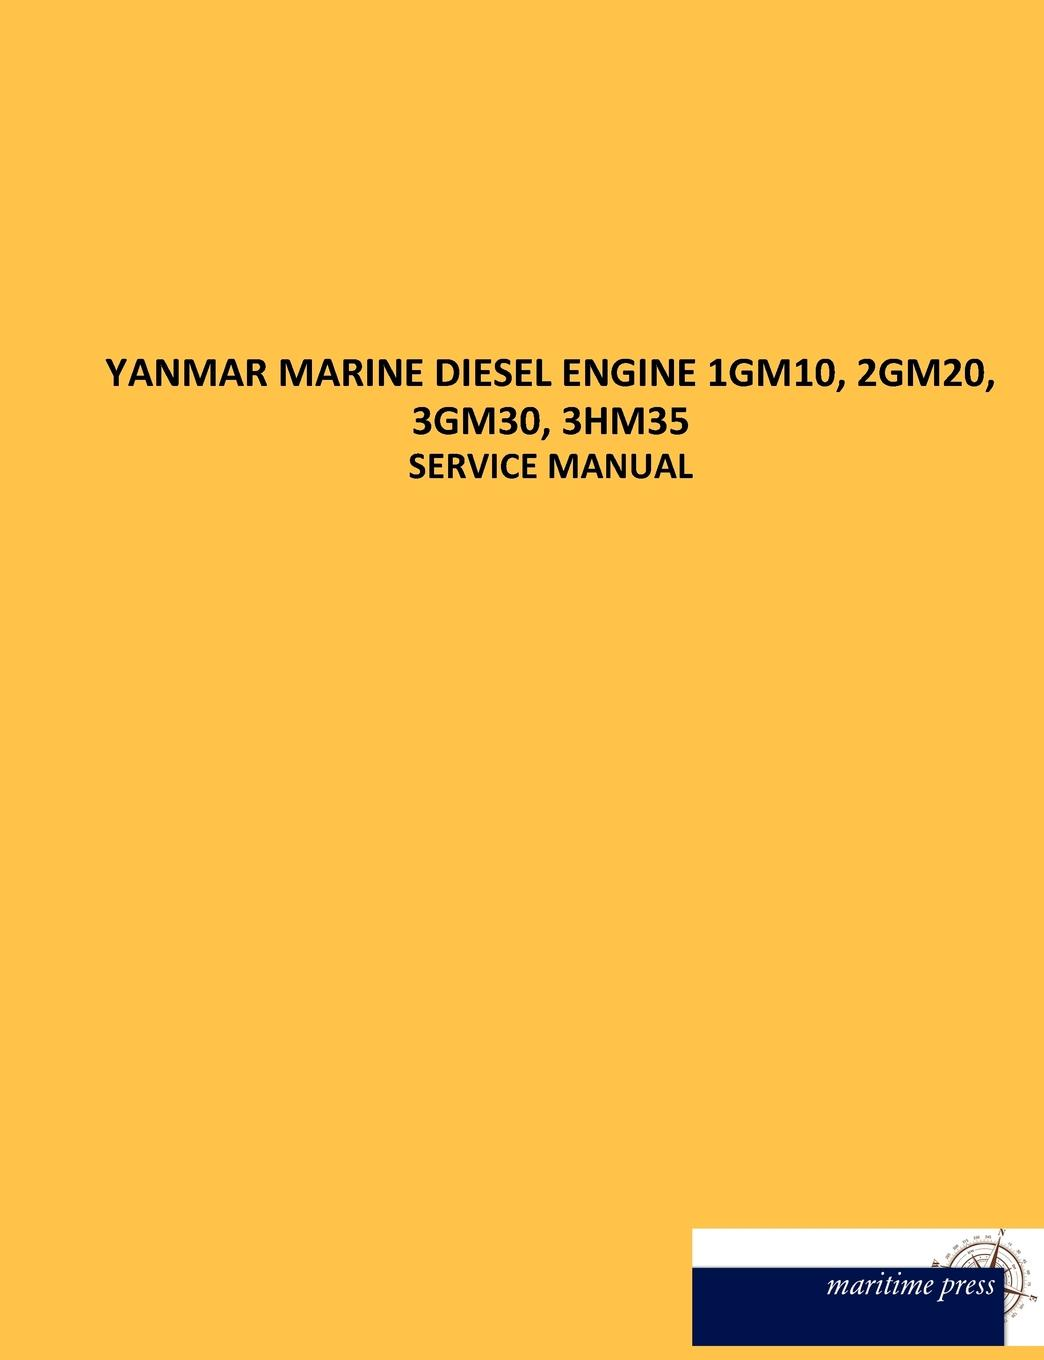 N. N. YANMAR MARINE DIESEL ENGINE 1GM10, 2GM20, 3GM30, 3HM35 thor fossen i handbook of marine craft hydrodynamics and motion control